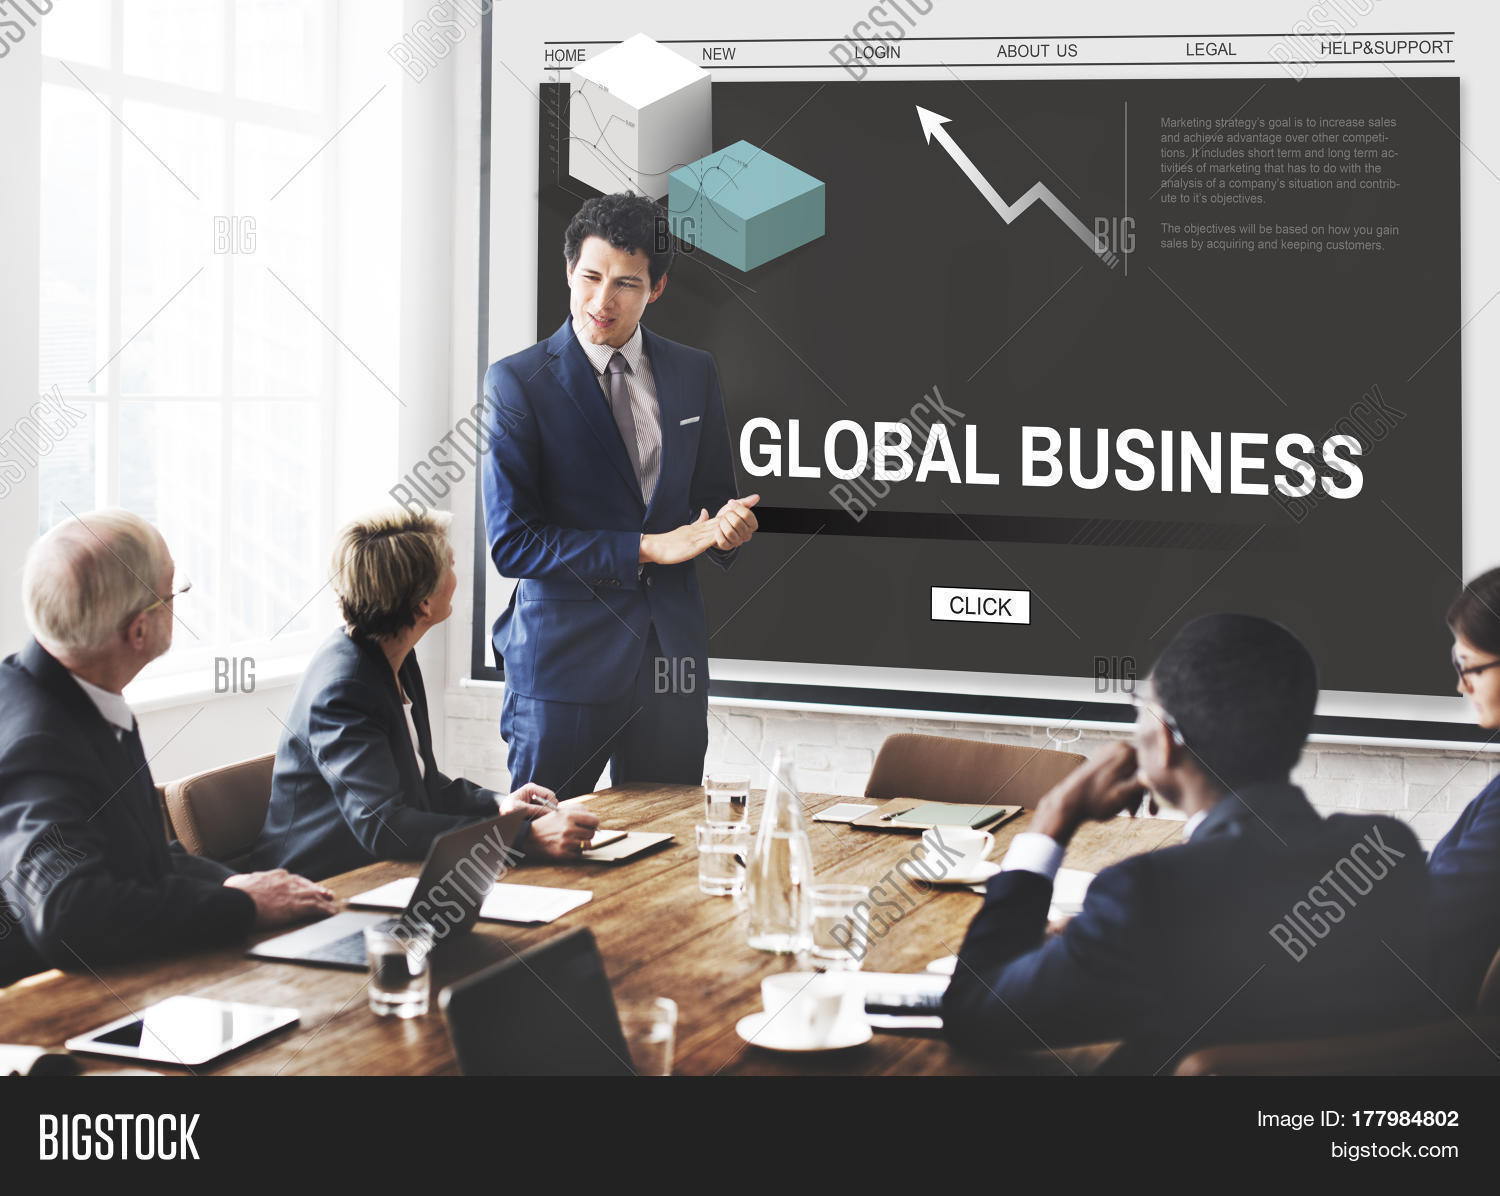 dendreon corporation strategies for international growth Marketing strategy 2 learning objectives learning objectives 42 chapter 2 marketing strategy personnel plan corporation corporate mission finance plan operational plan marketing plan such as growth, profitability, stability, or survival, stated.